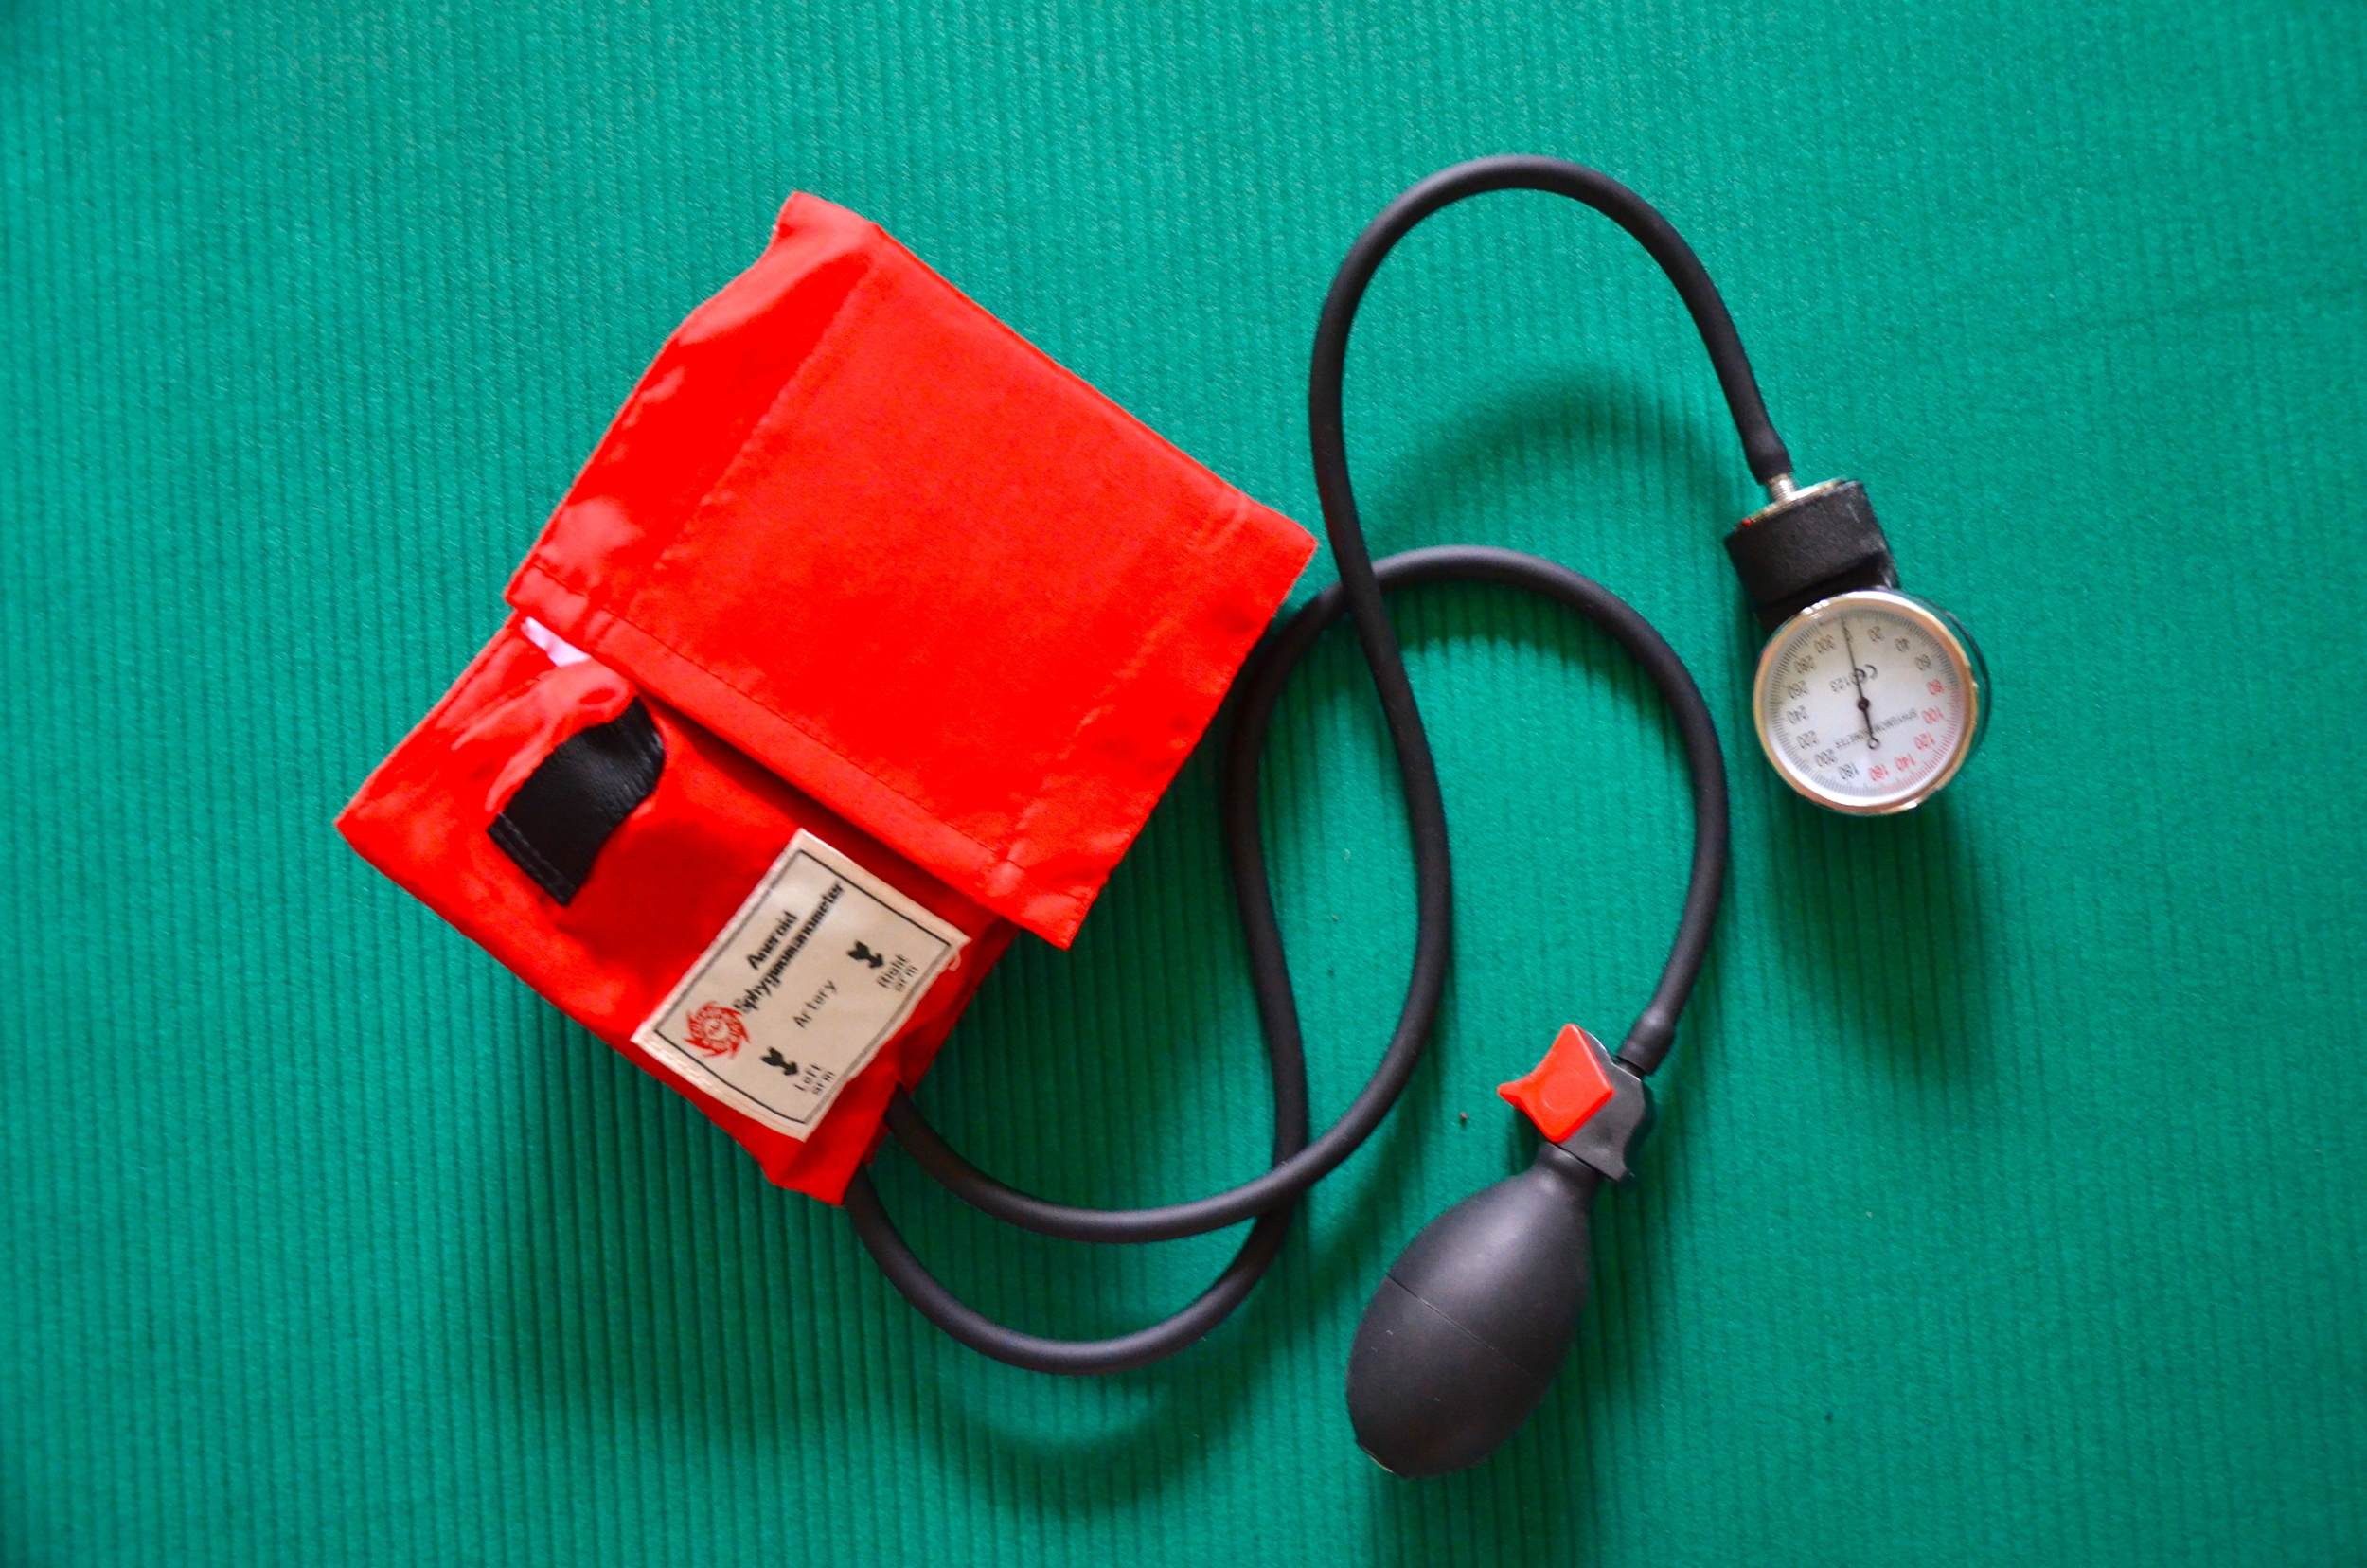 the blood pressure cuff (sphygmomanometer) is also useful for the assessment and conditioning of the abdominal wall